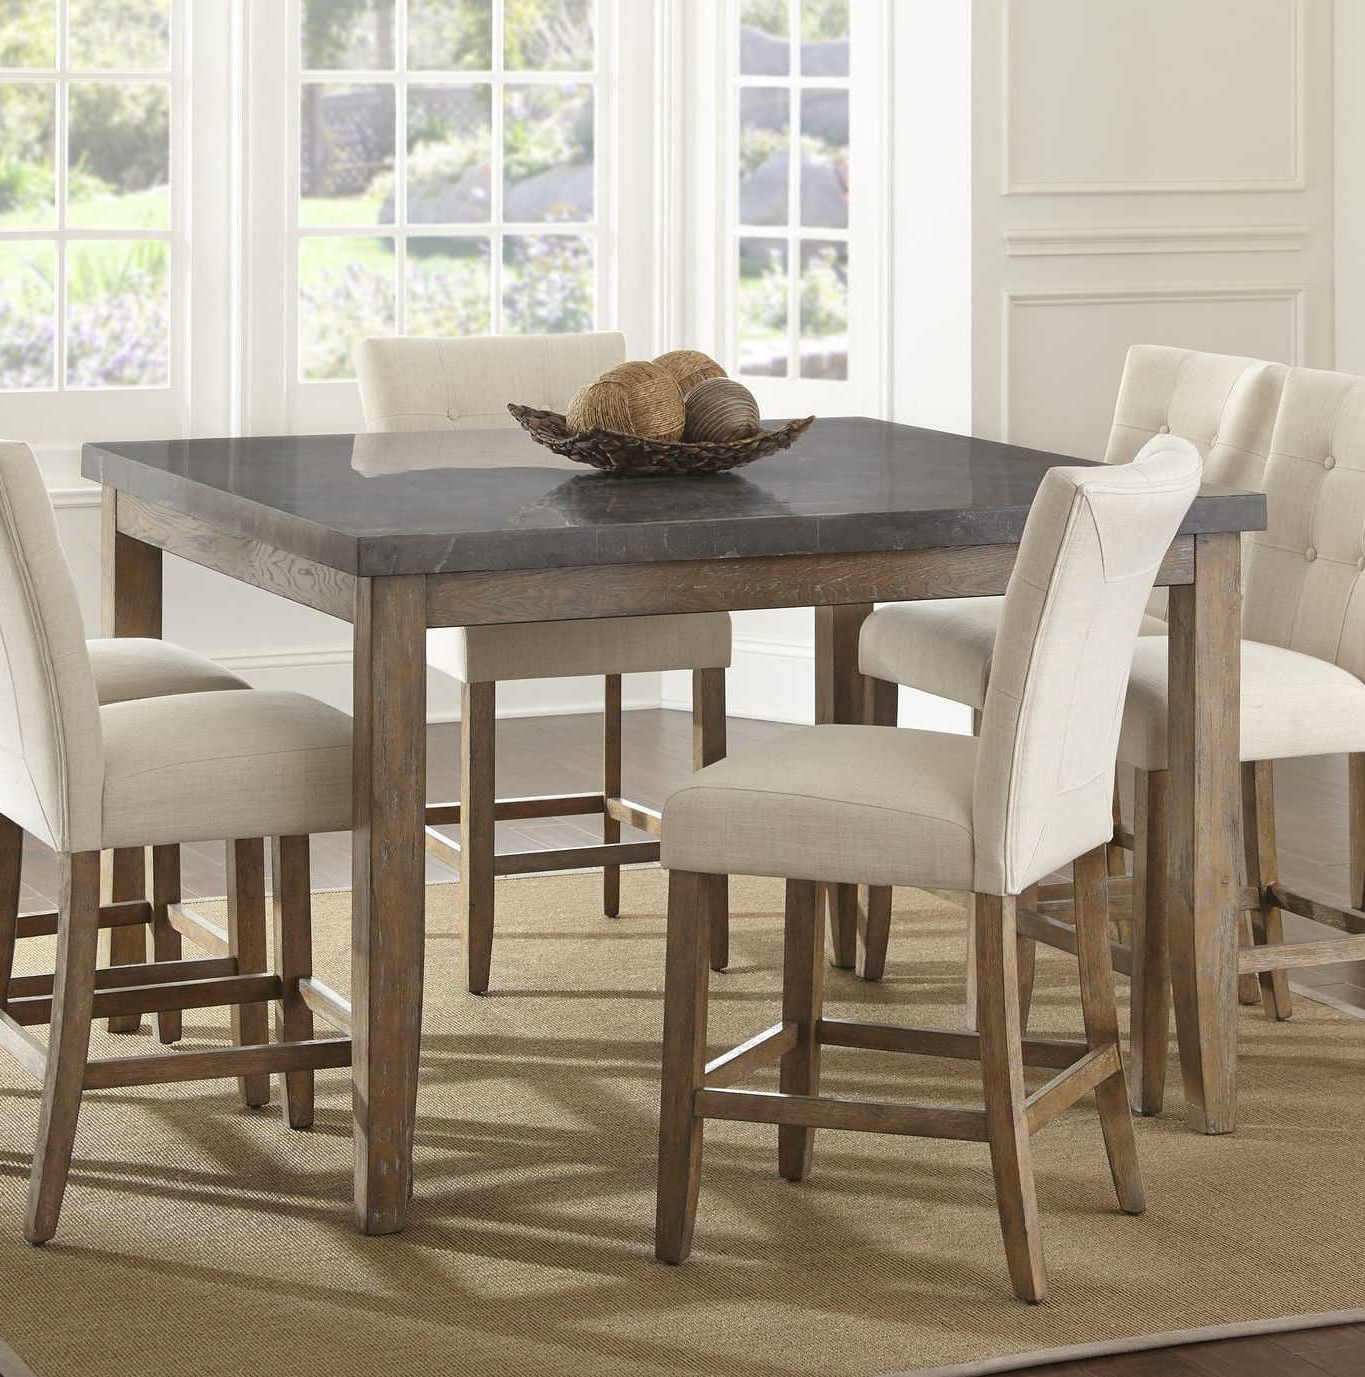 Recent Transitional Driftwood Casual Dining Tables Throughout Steve Silver Debby Driftwood Counter Height Table (View 17 of 30)